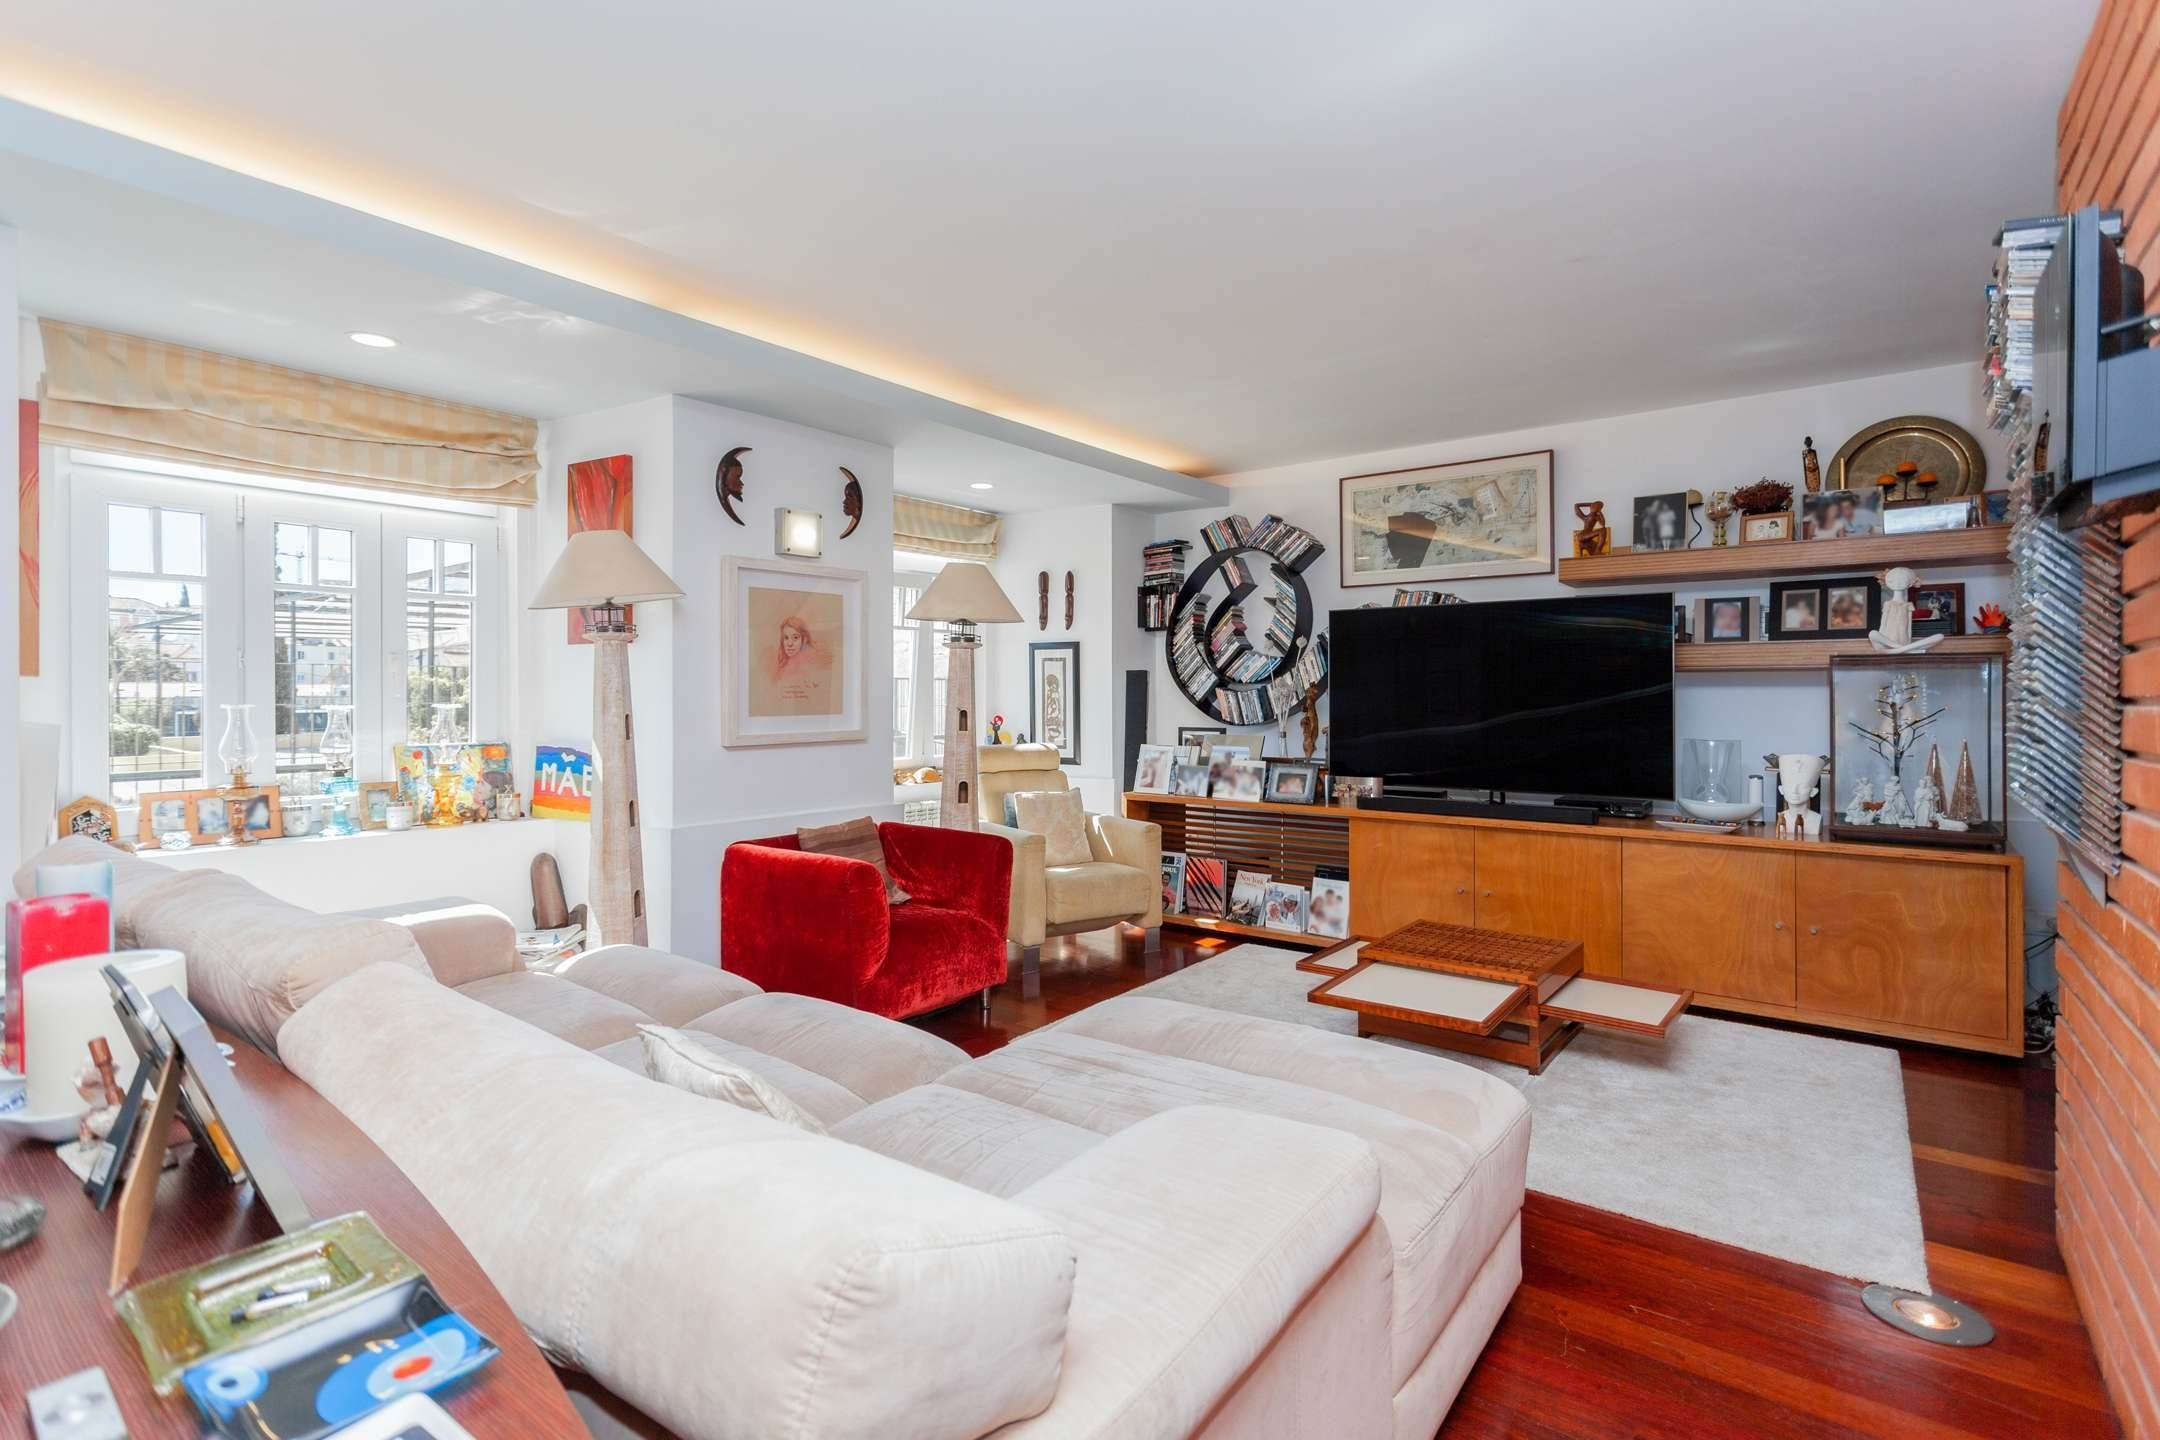 4. διαμερίσματα για την Πώληση στο Fantastic 4 bedroom apartment, located in Lapa, one of the most prestigious neighbourhoods of Lisbon. With an around 174... Λισαβόνα, Πορτογαλια